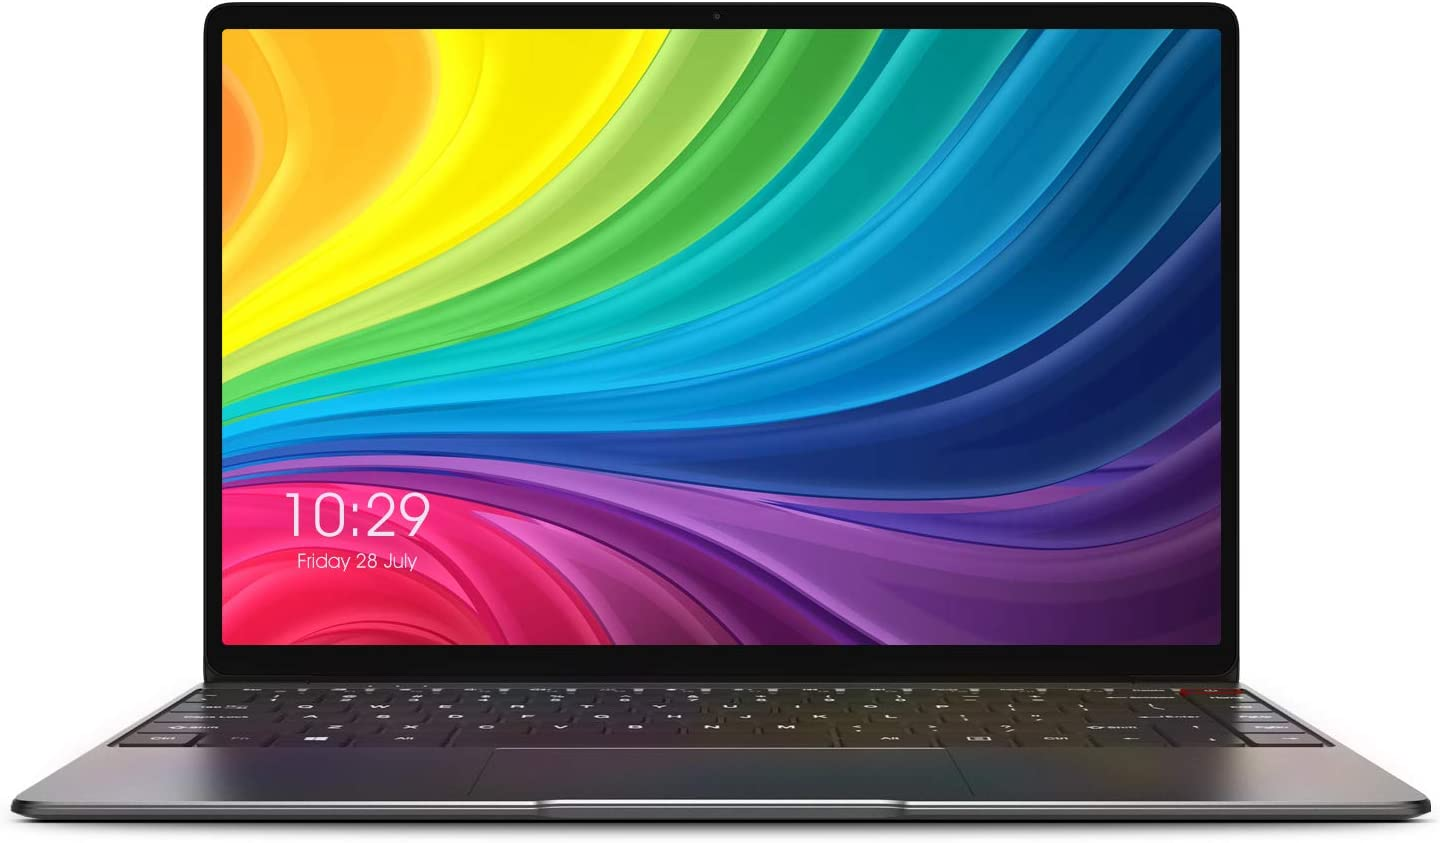 CHUWI AeroBook Laptop Computer, 13.3 Inch 1080P Bezel-Less IPS Screen, Intel Core M3 Processor, 8G / 256G SSD Fanless Windows Notebook with Type-c PD Charging, Lighter and Thinner